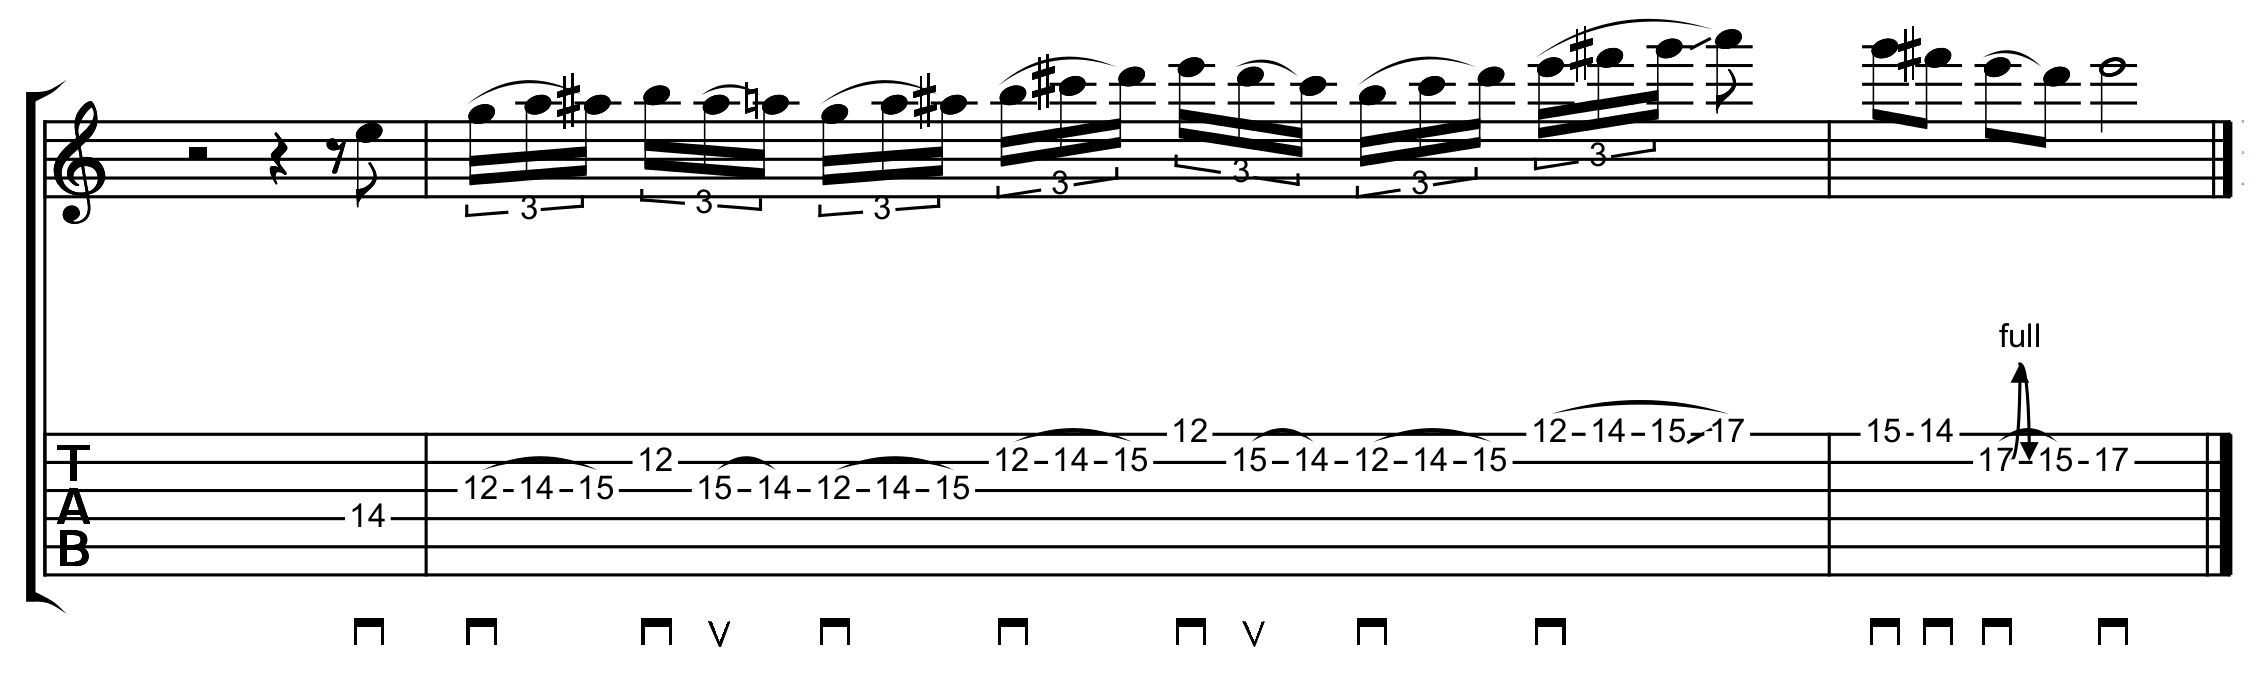 pentatonic box shape lick played with hammer-ons and pull-offs